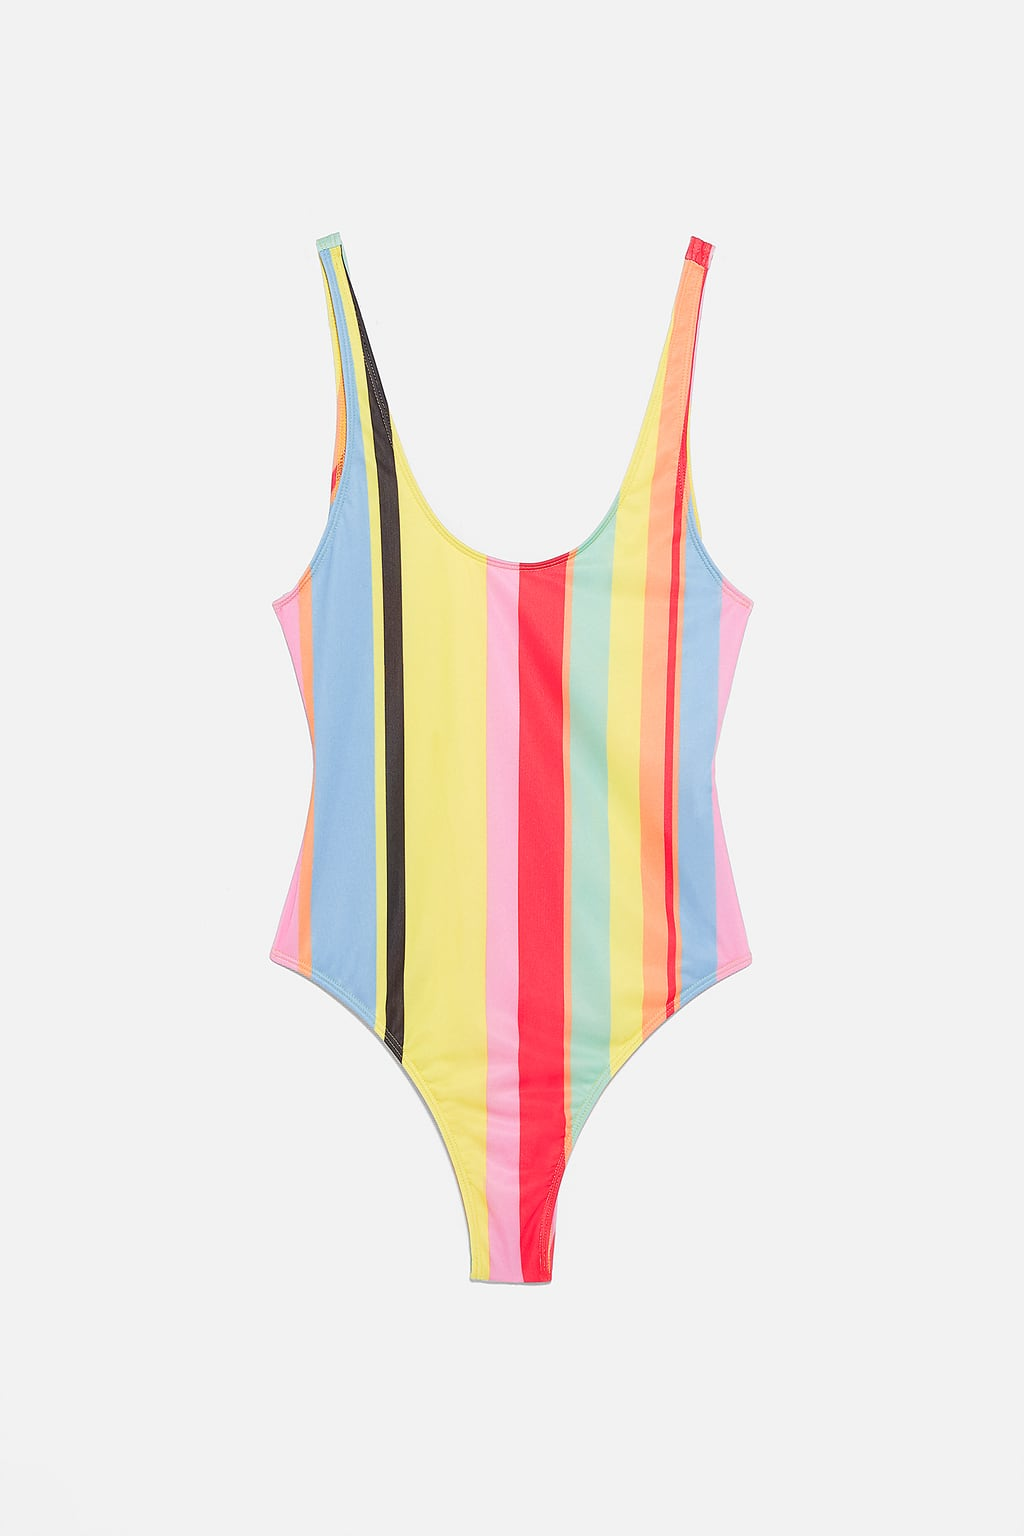 - STRIPED SWIMSUIT $39.90 CAD